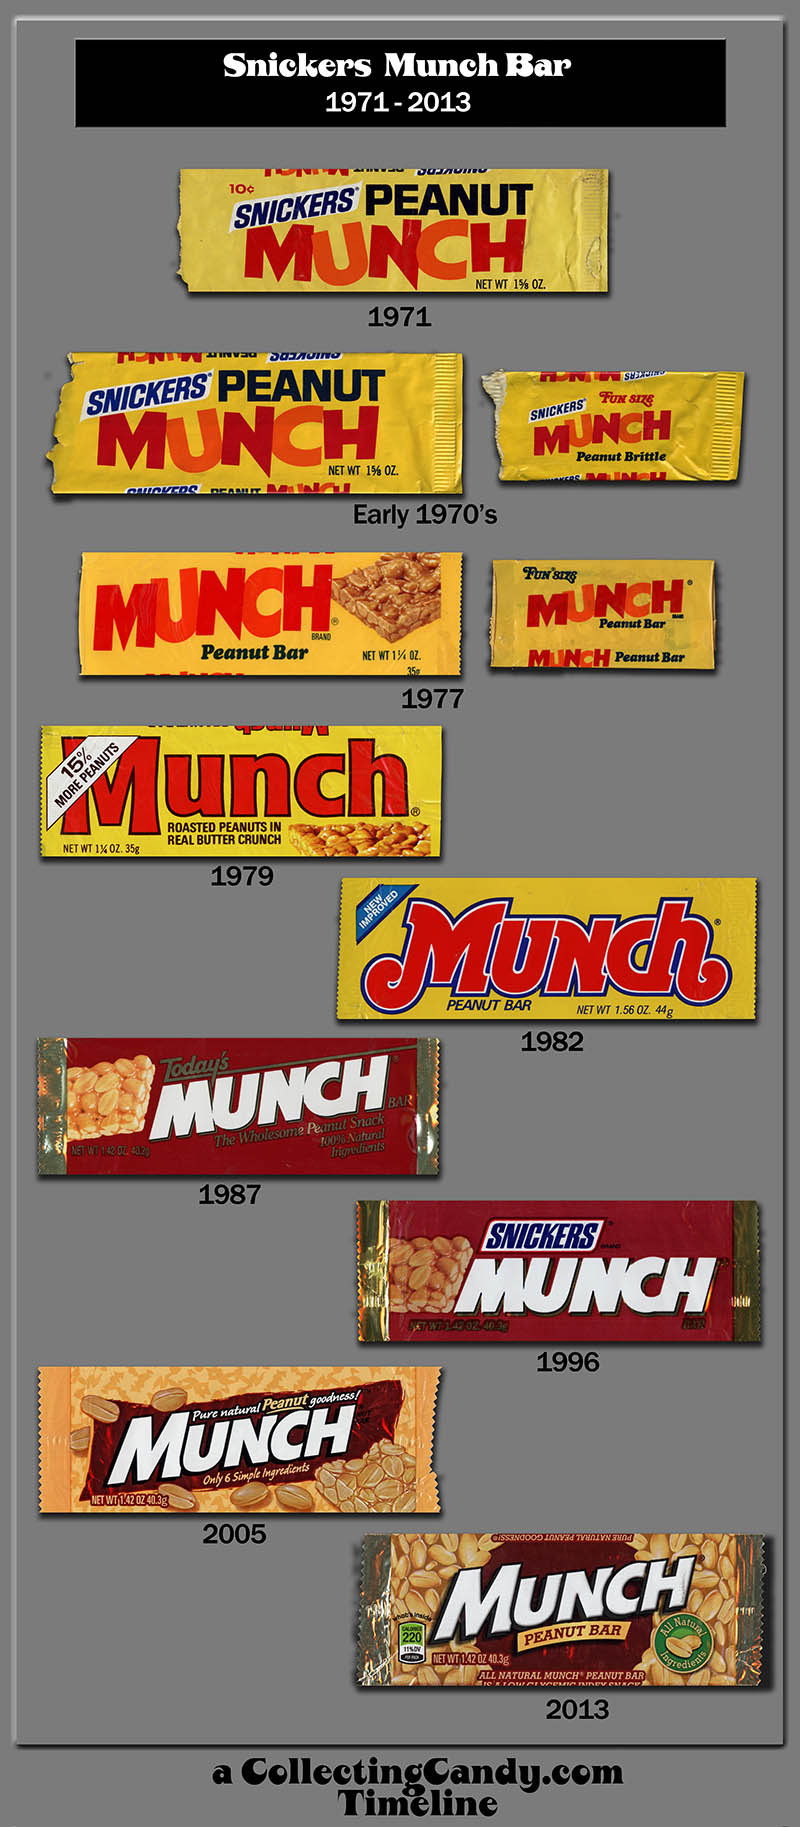 CollectingCandy.com - Snickers Munch Bar Timeline - Updated